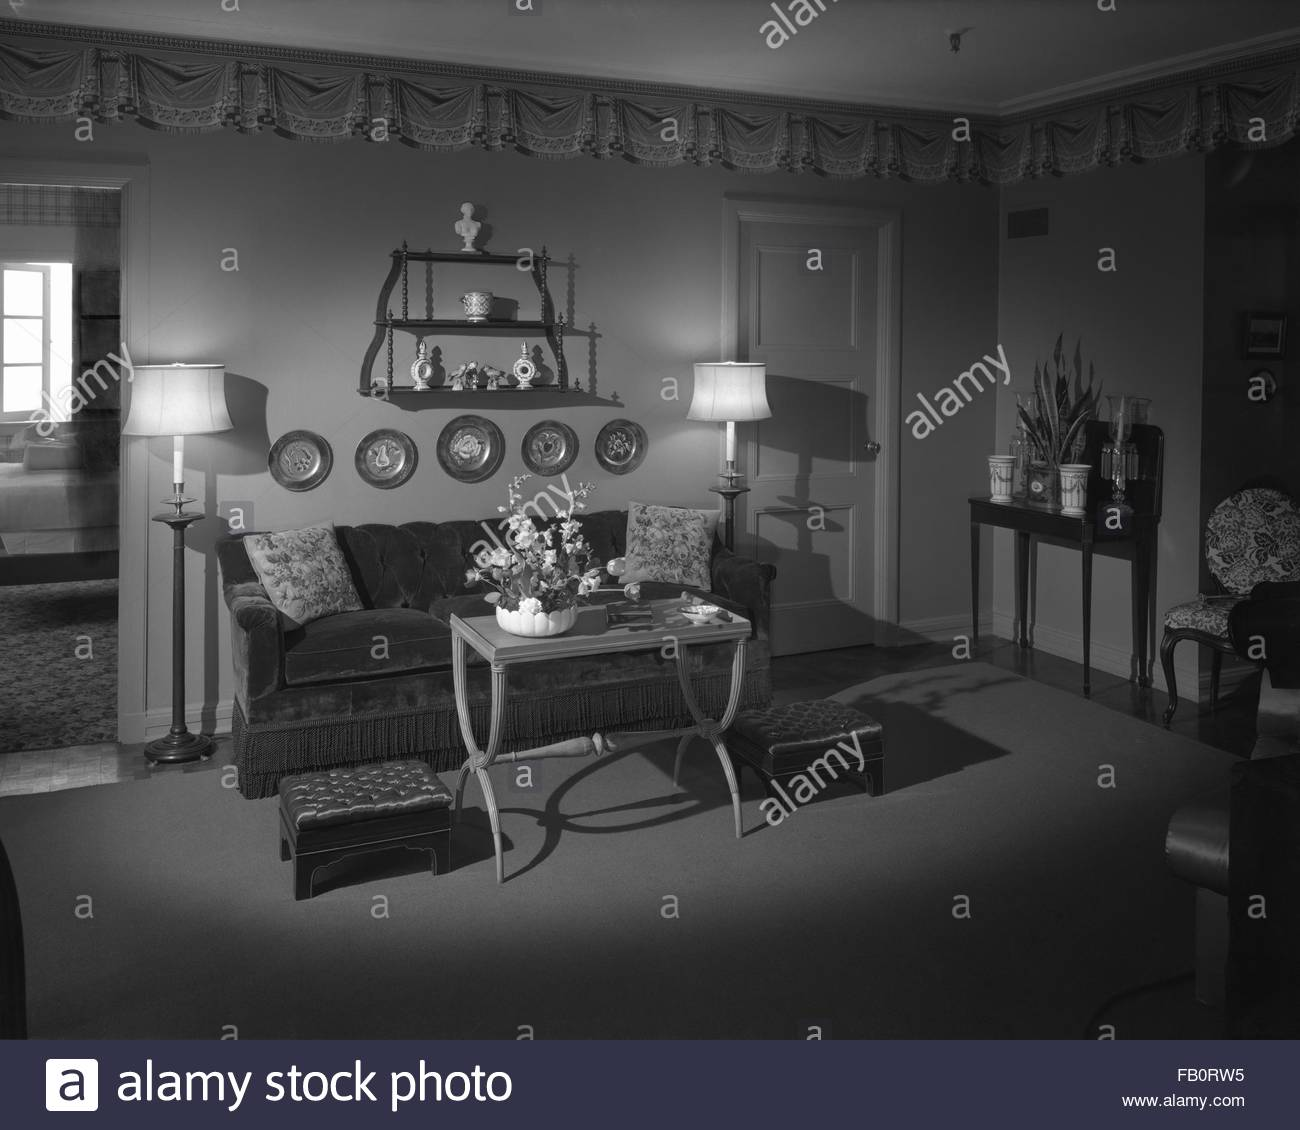 Trend House At Marshall Field And Company, 1940 Apr. 1. Living Room.